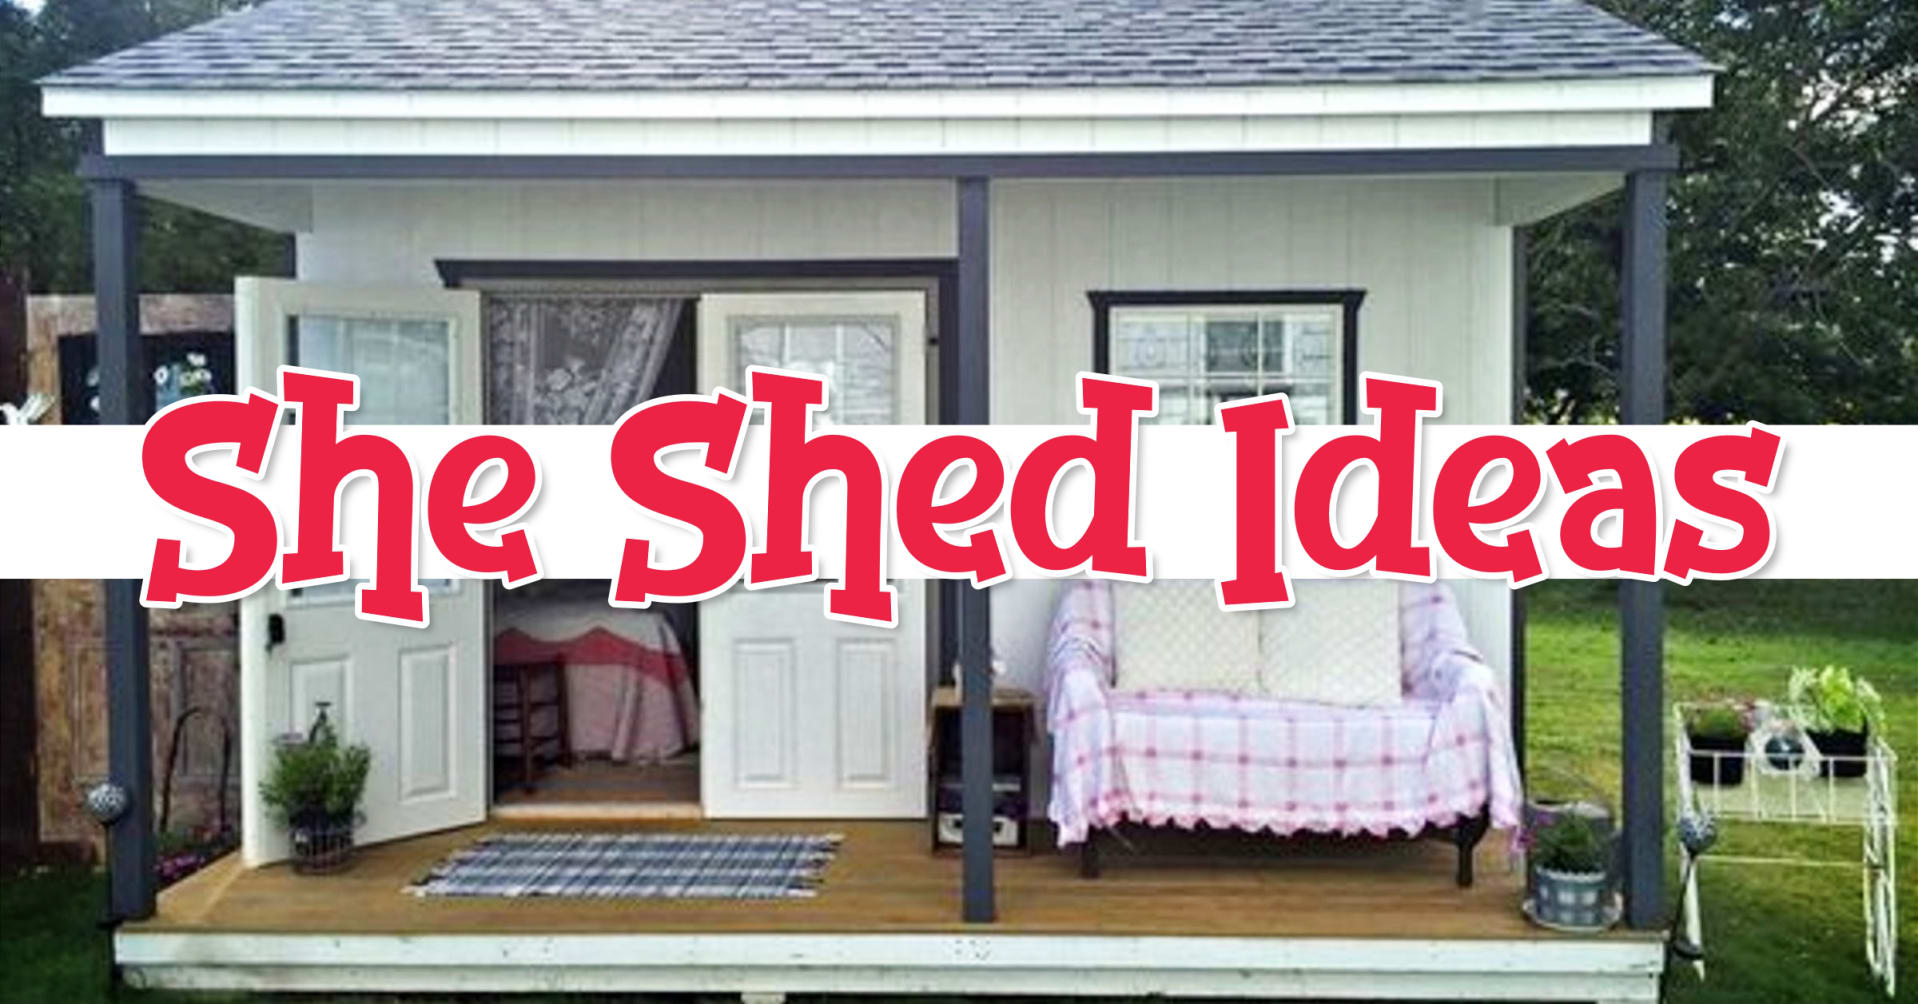 She Shed Ideas! She Shed Office Ideas - Gorgeous Shed Office Ideas For Your Backyard - She Shed Pics, Images and Designs For The Perfect She Shed (or HE shed)